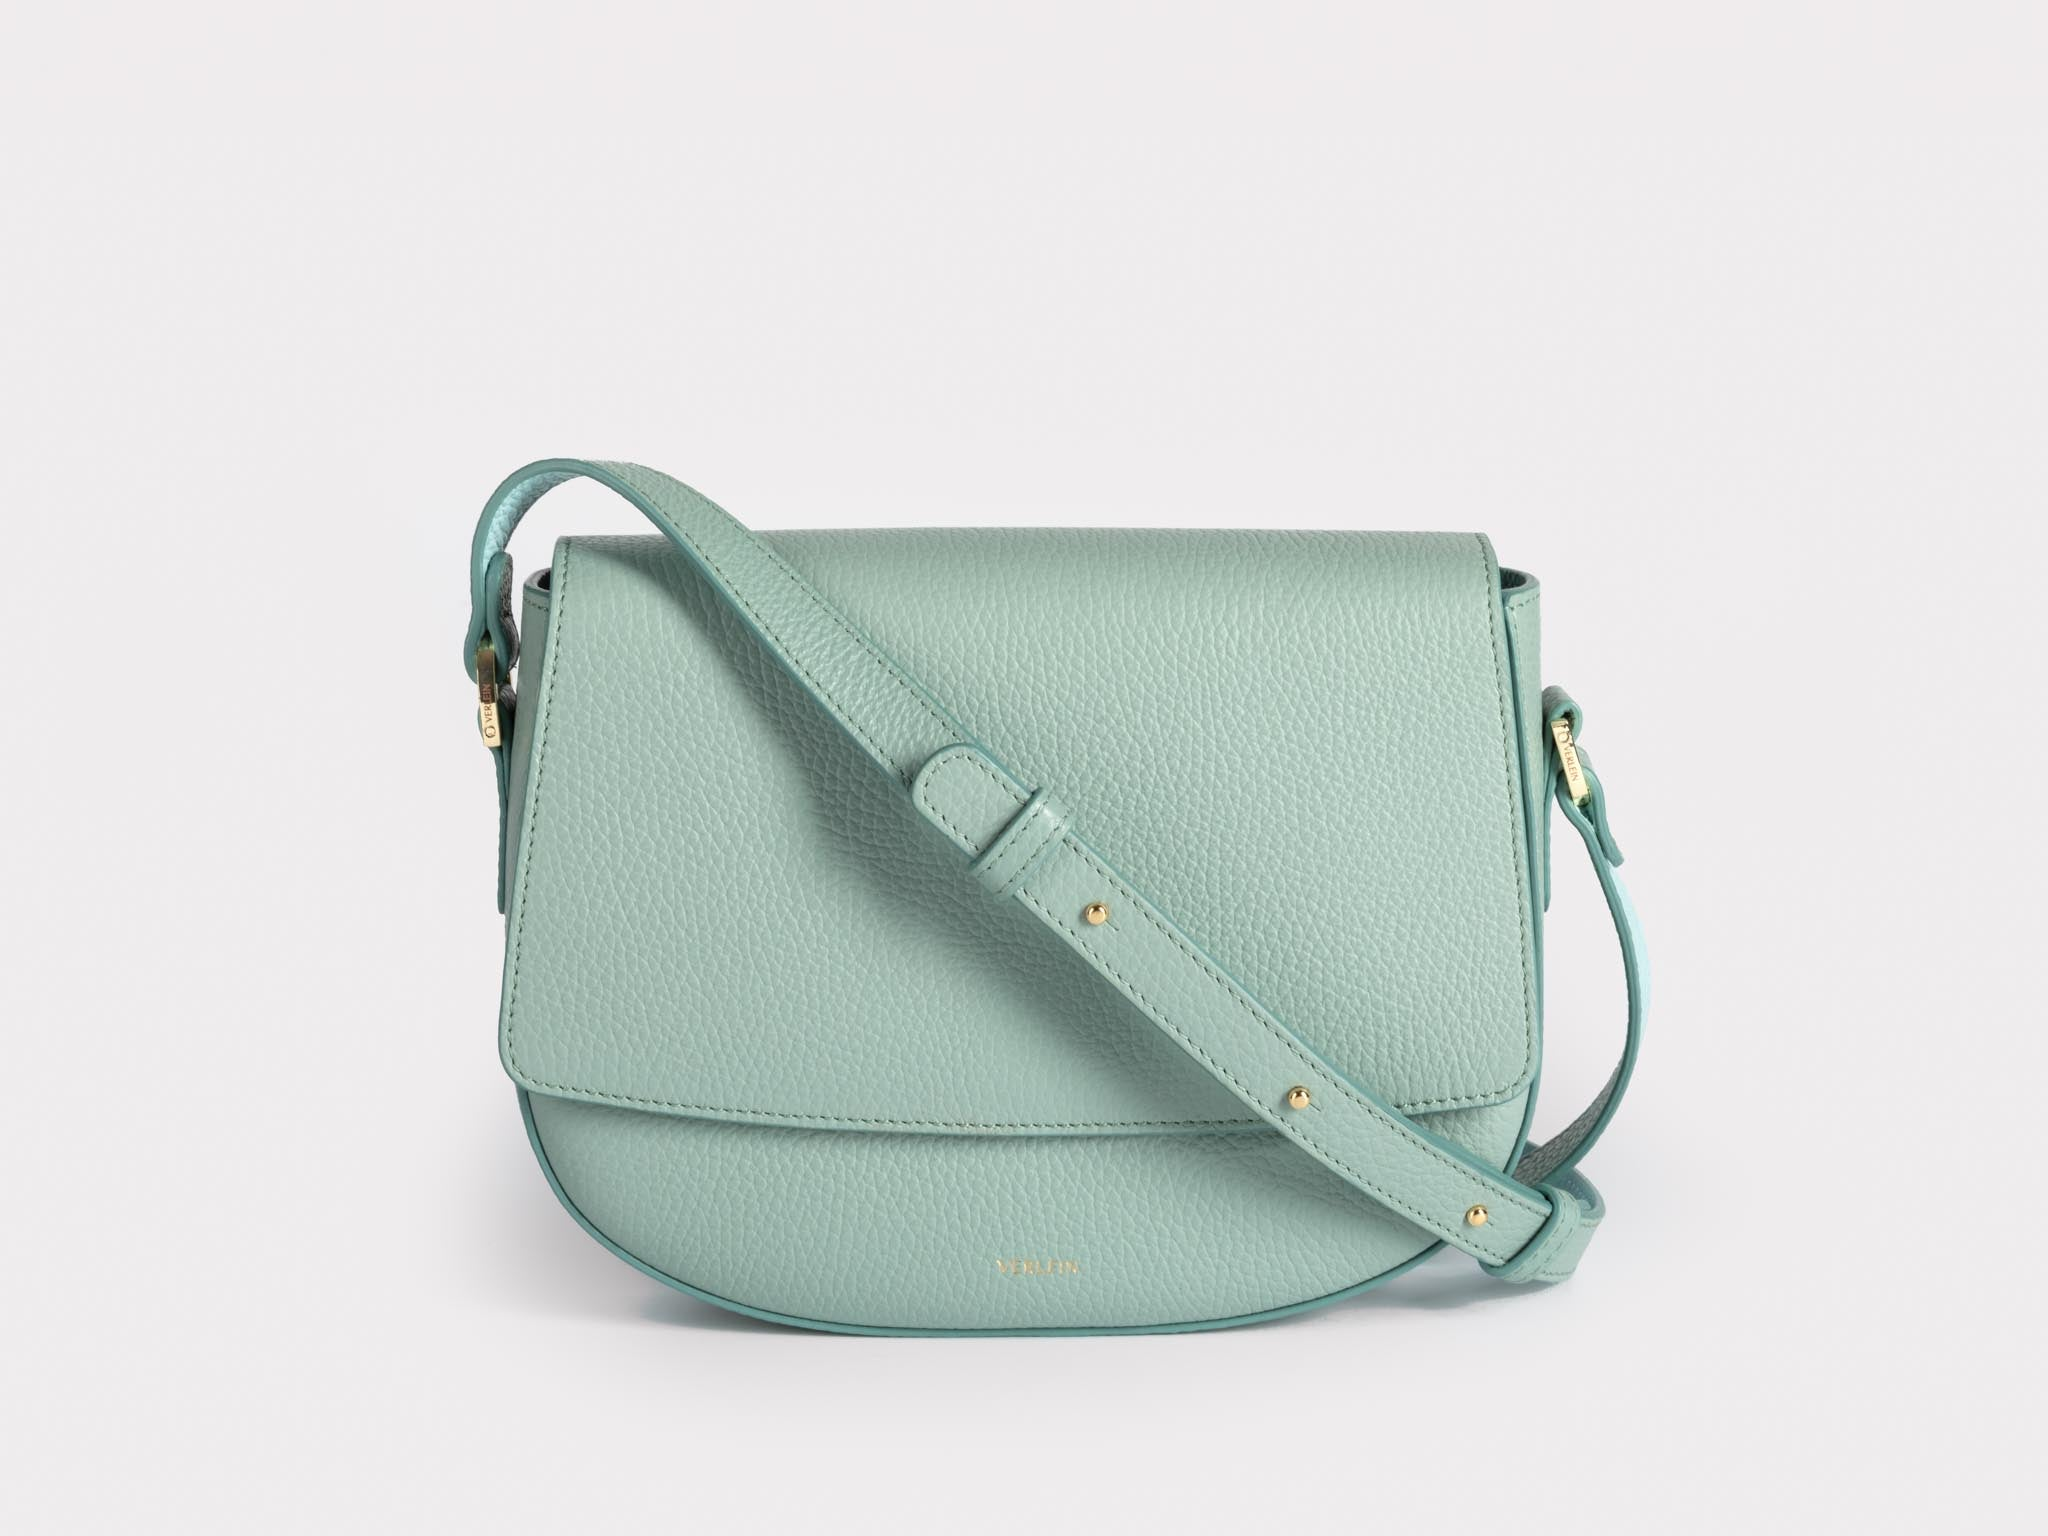 Ana Cinch Crossbody Bag in Dusty Mint | Verlein